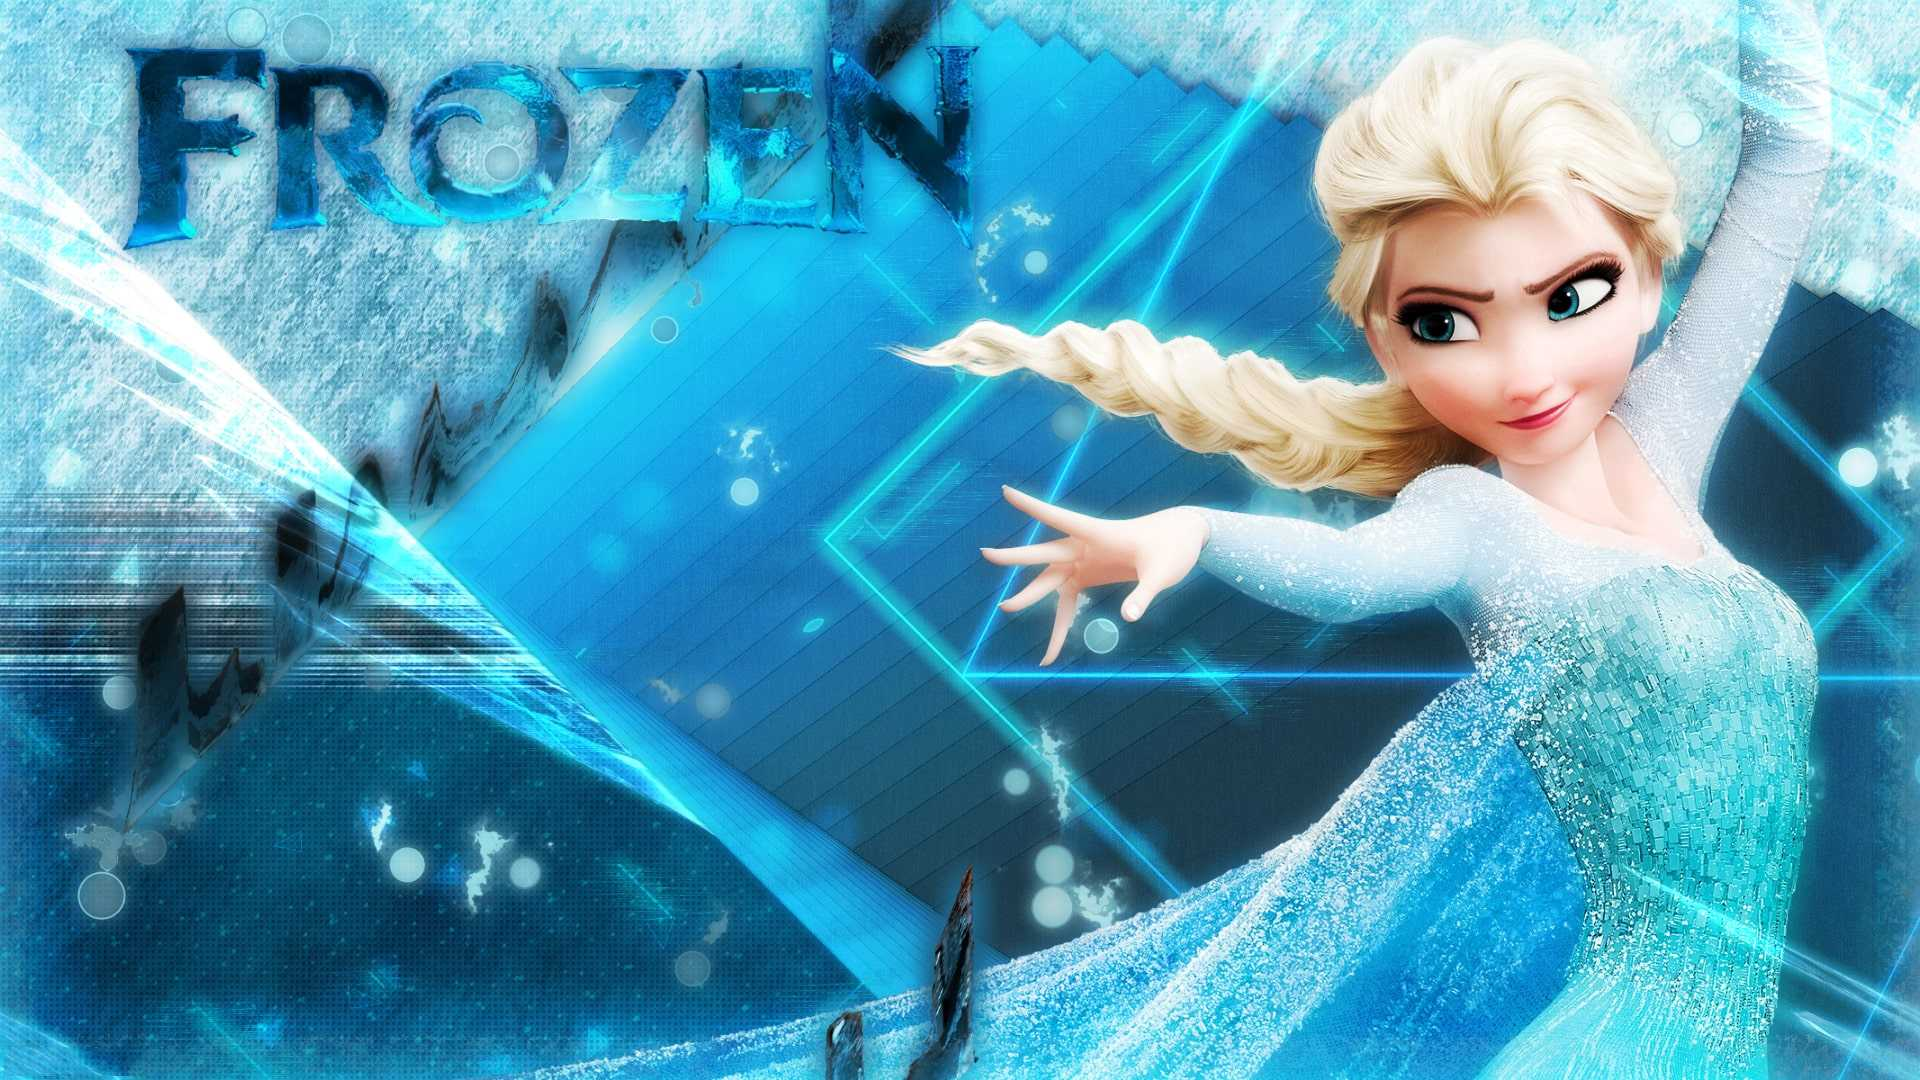 Frozen Wallpaper 2